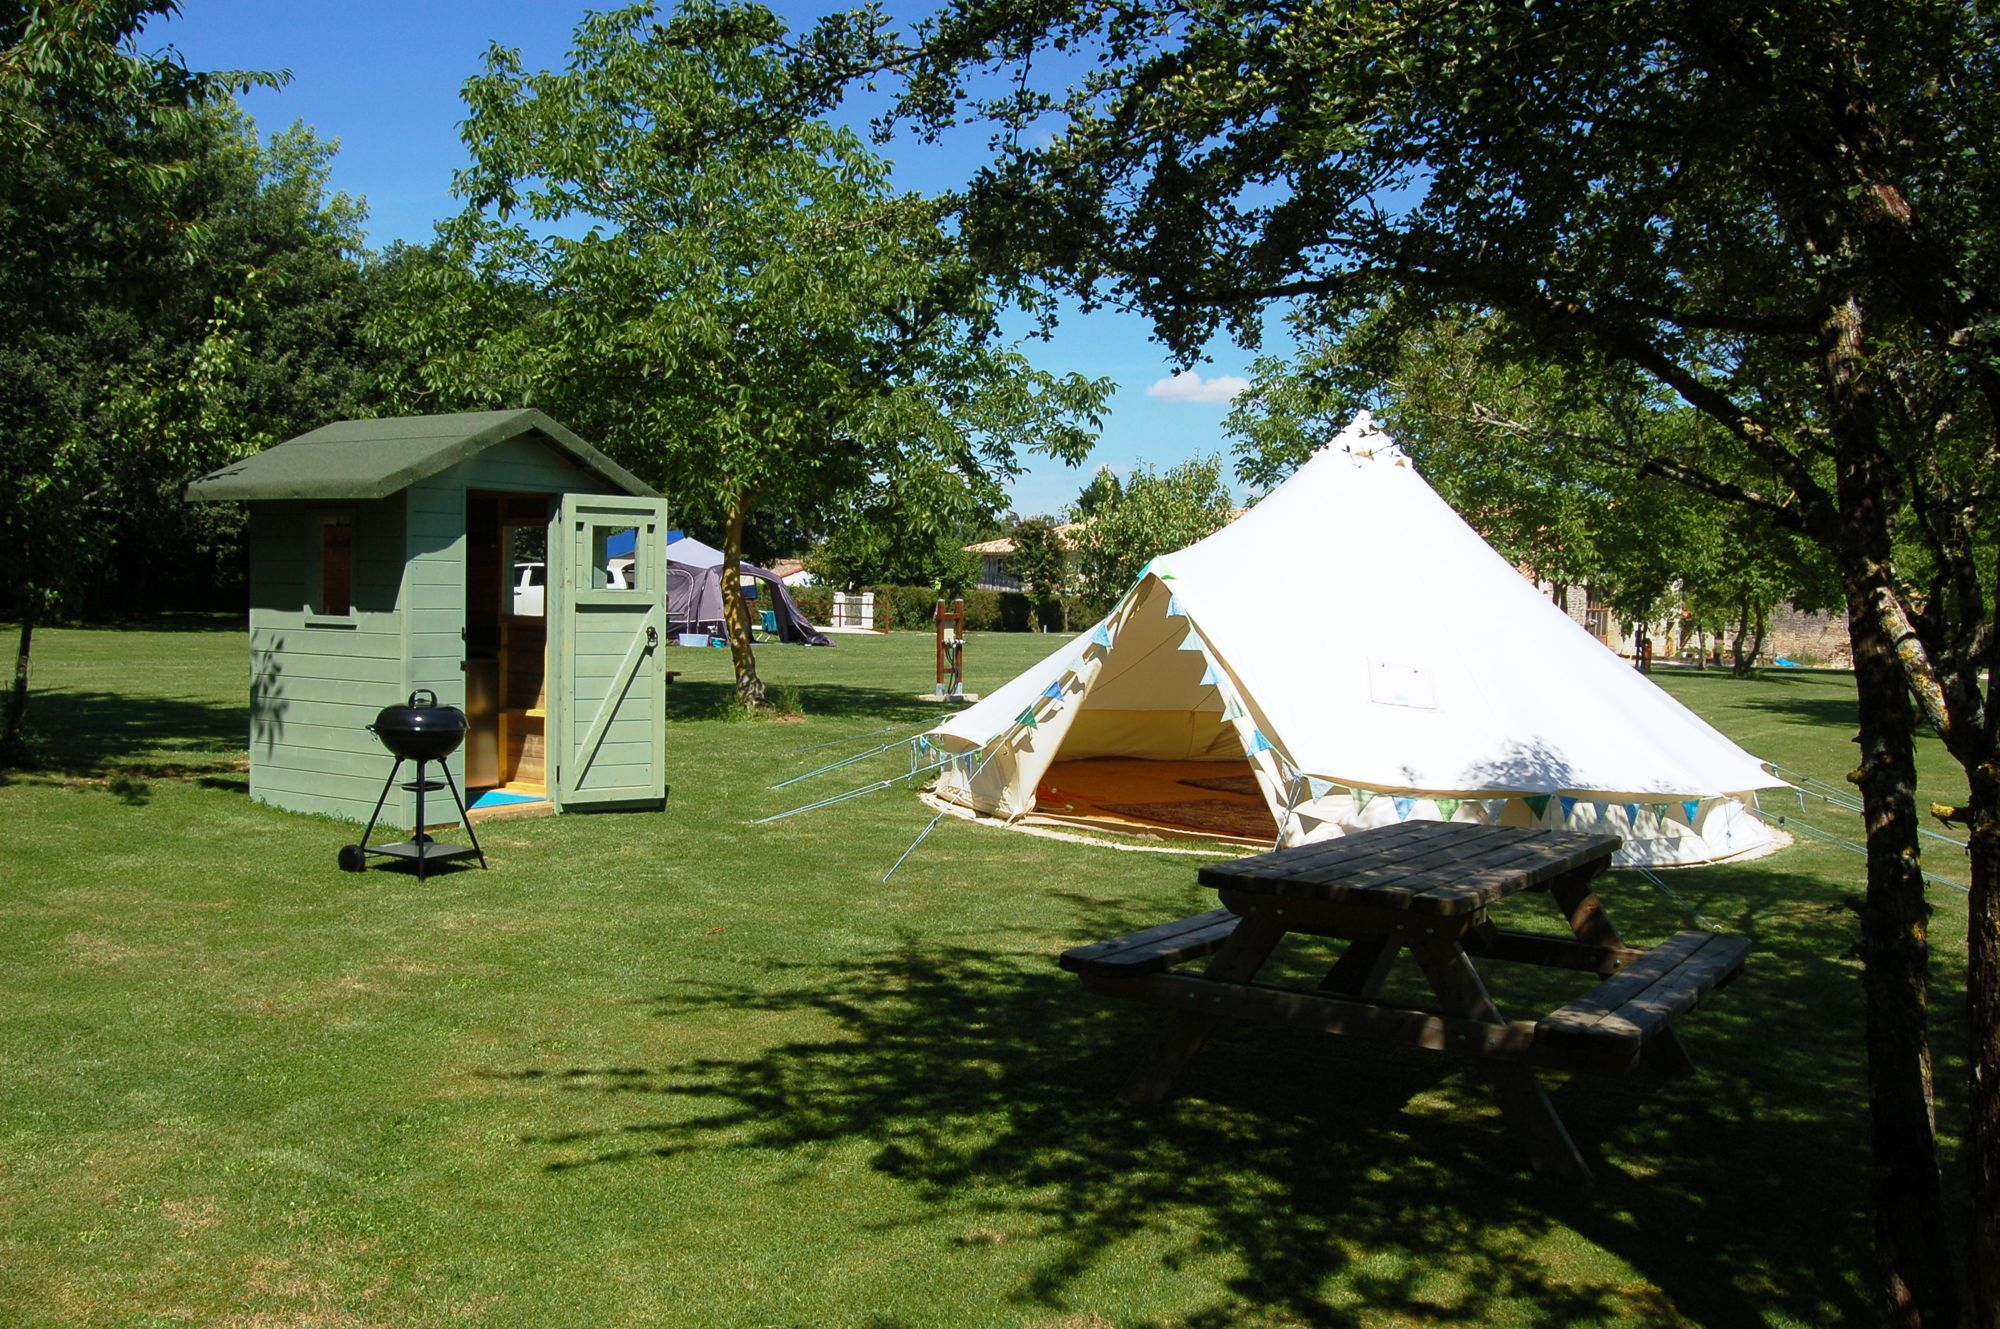 Glamping in Europe holidays at Glampingly